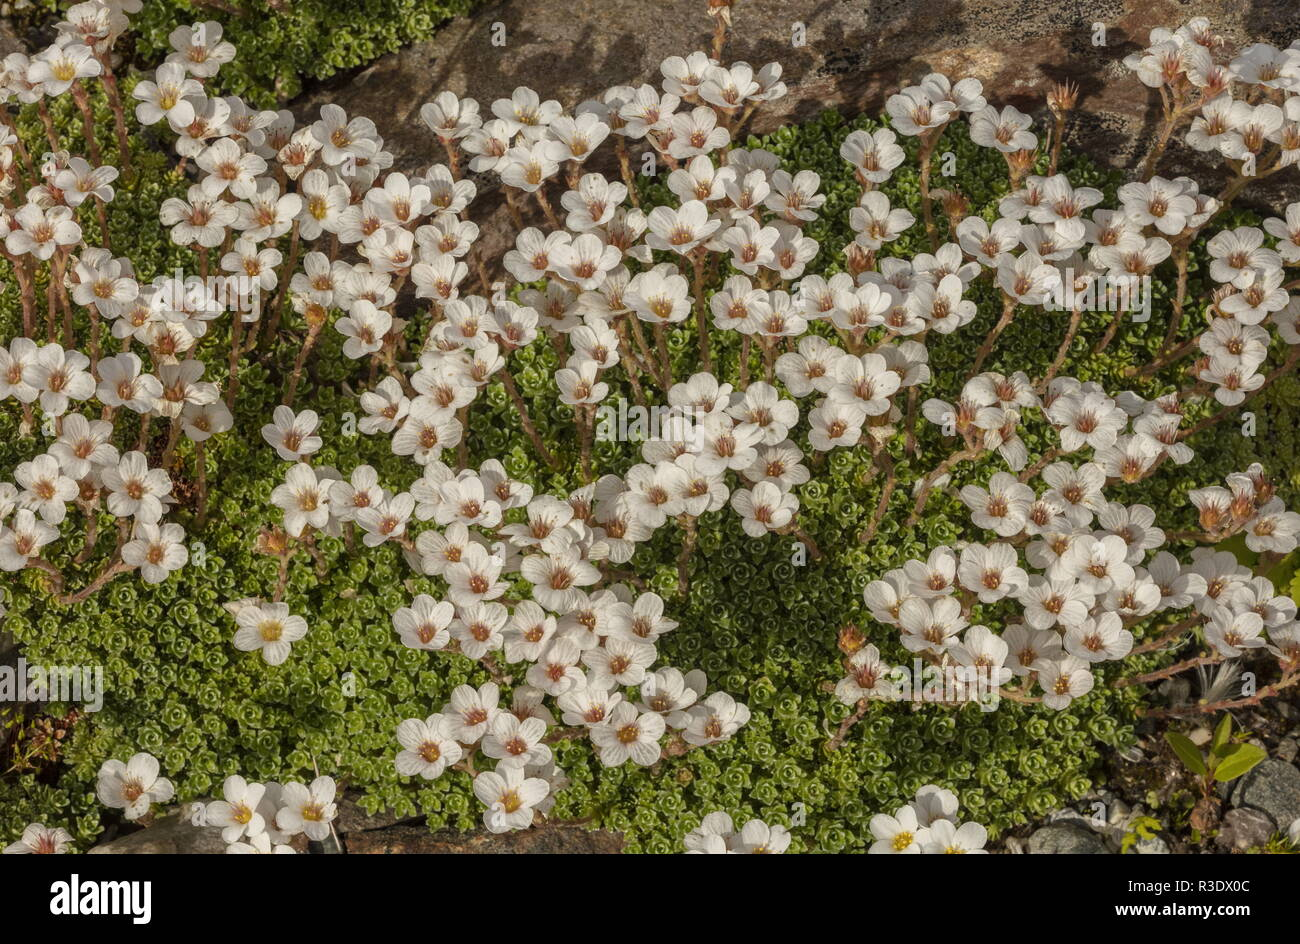 Kabschia Saxifrage, Saxifraga marginata, in flower; from the Balkans and Italy. - Stock Image